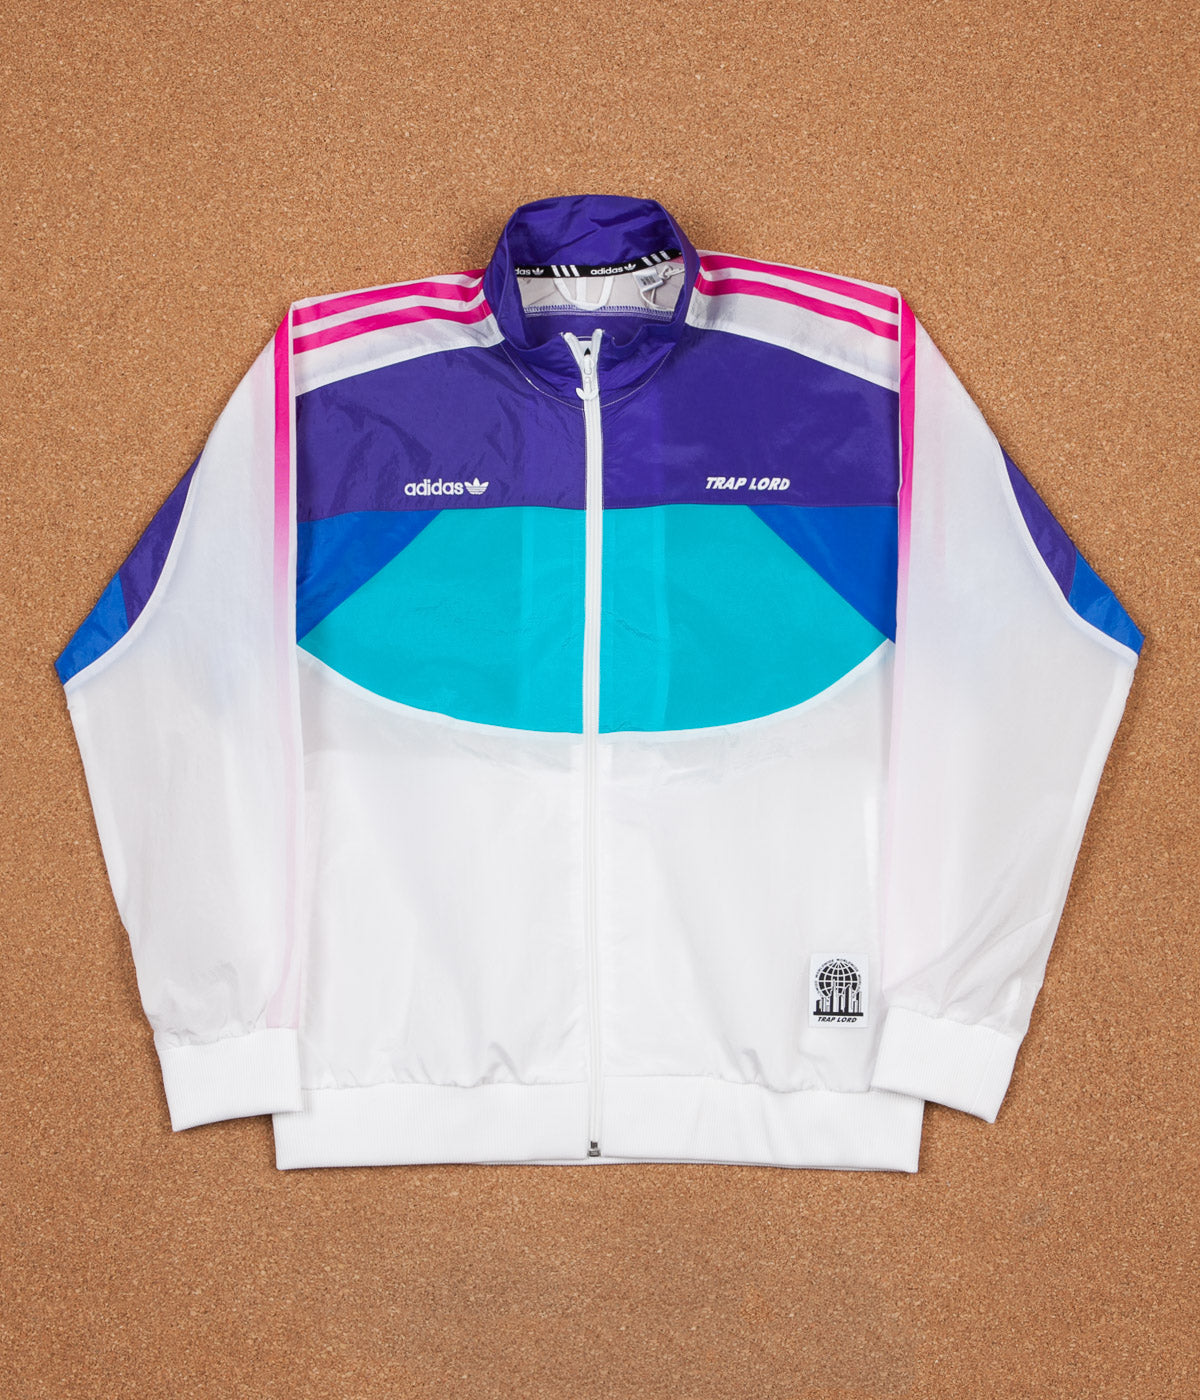 Adidas x Trap Lord Ferg Windbreaker Jacket - White / Energy Ink / Blue / Energy Blue